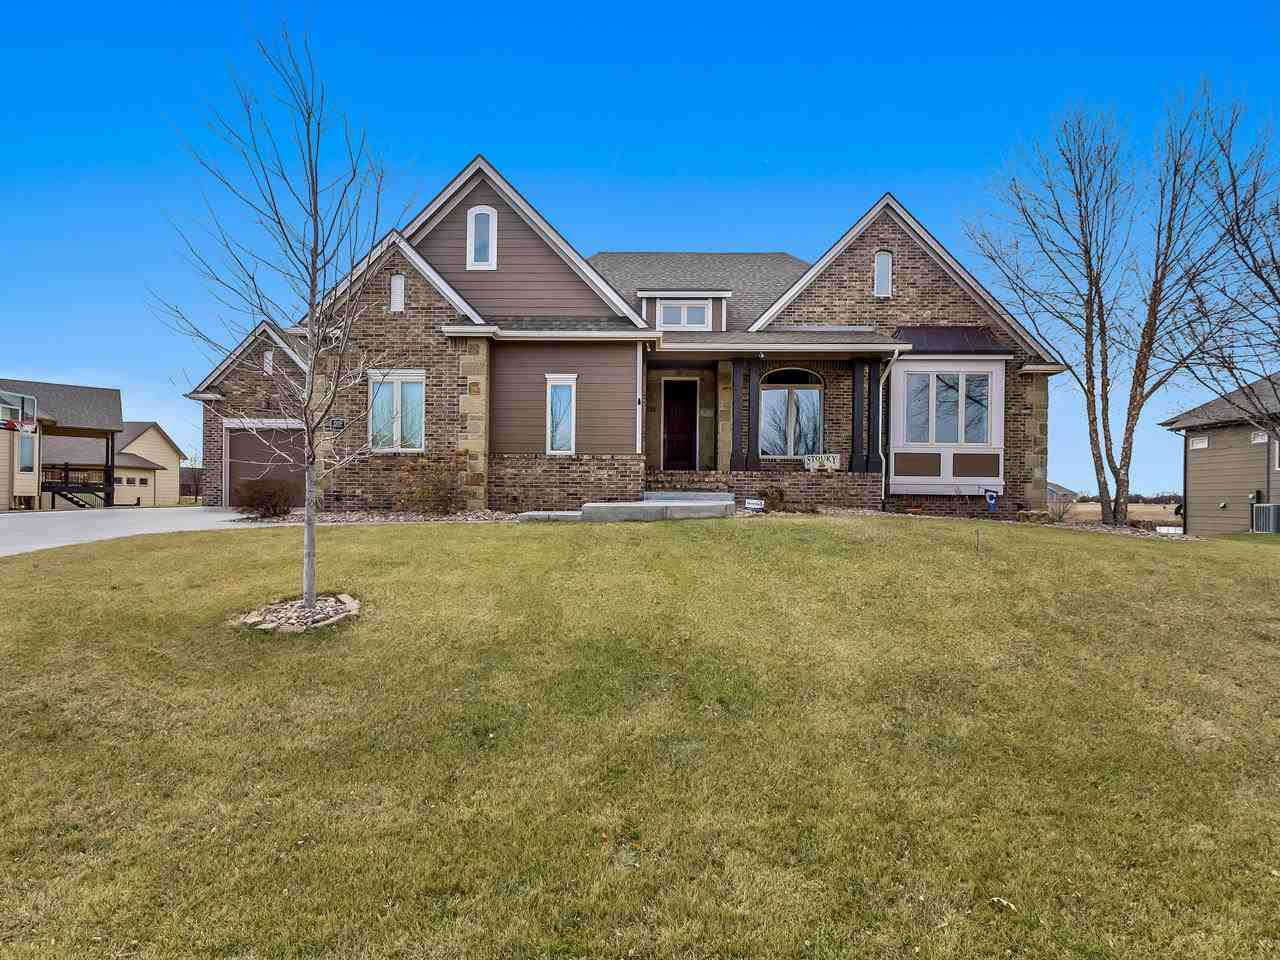 This Home Has it all!  If you are looking for a Move-in Ready home on a large lake lot in Goddard Sc